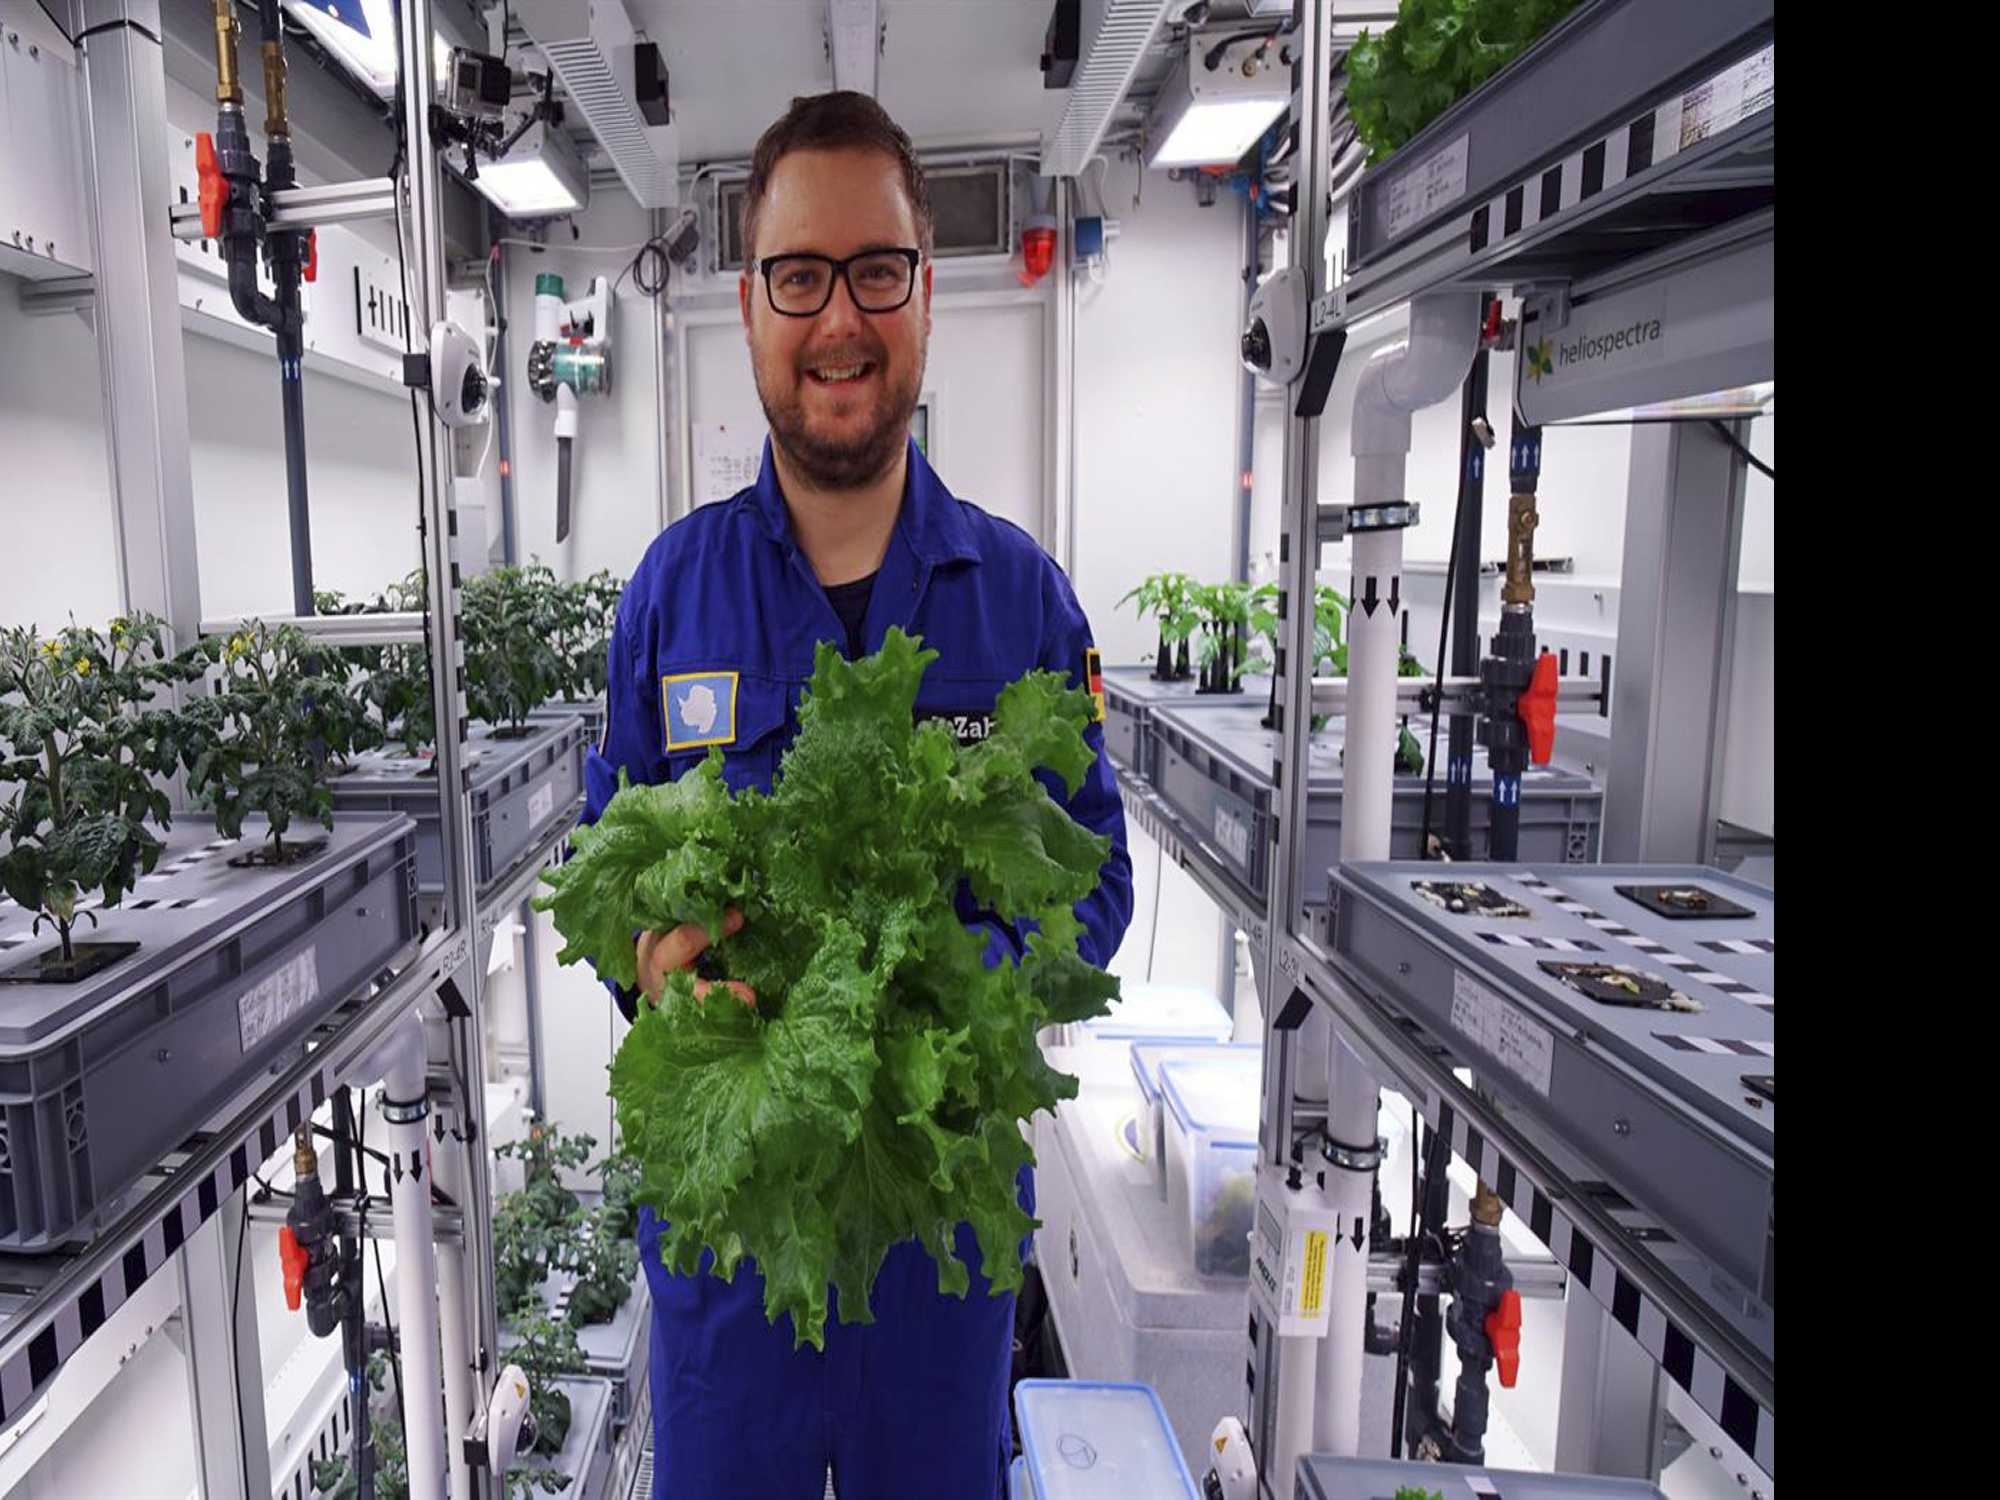 Scientists Harvest First Vegetables in Antarctic Greenhouse